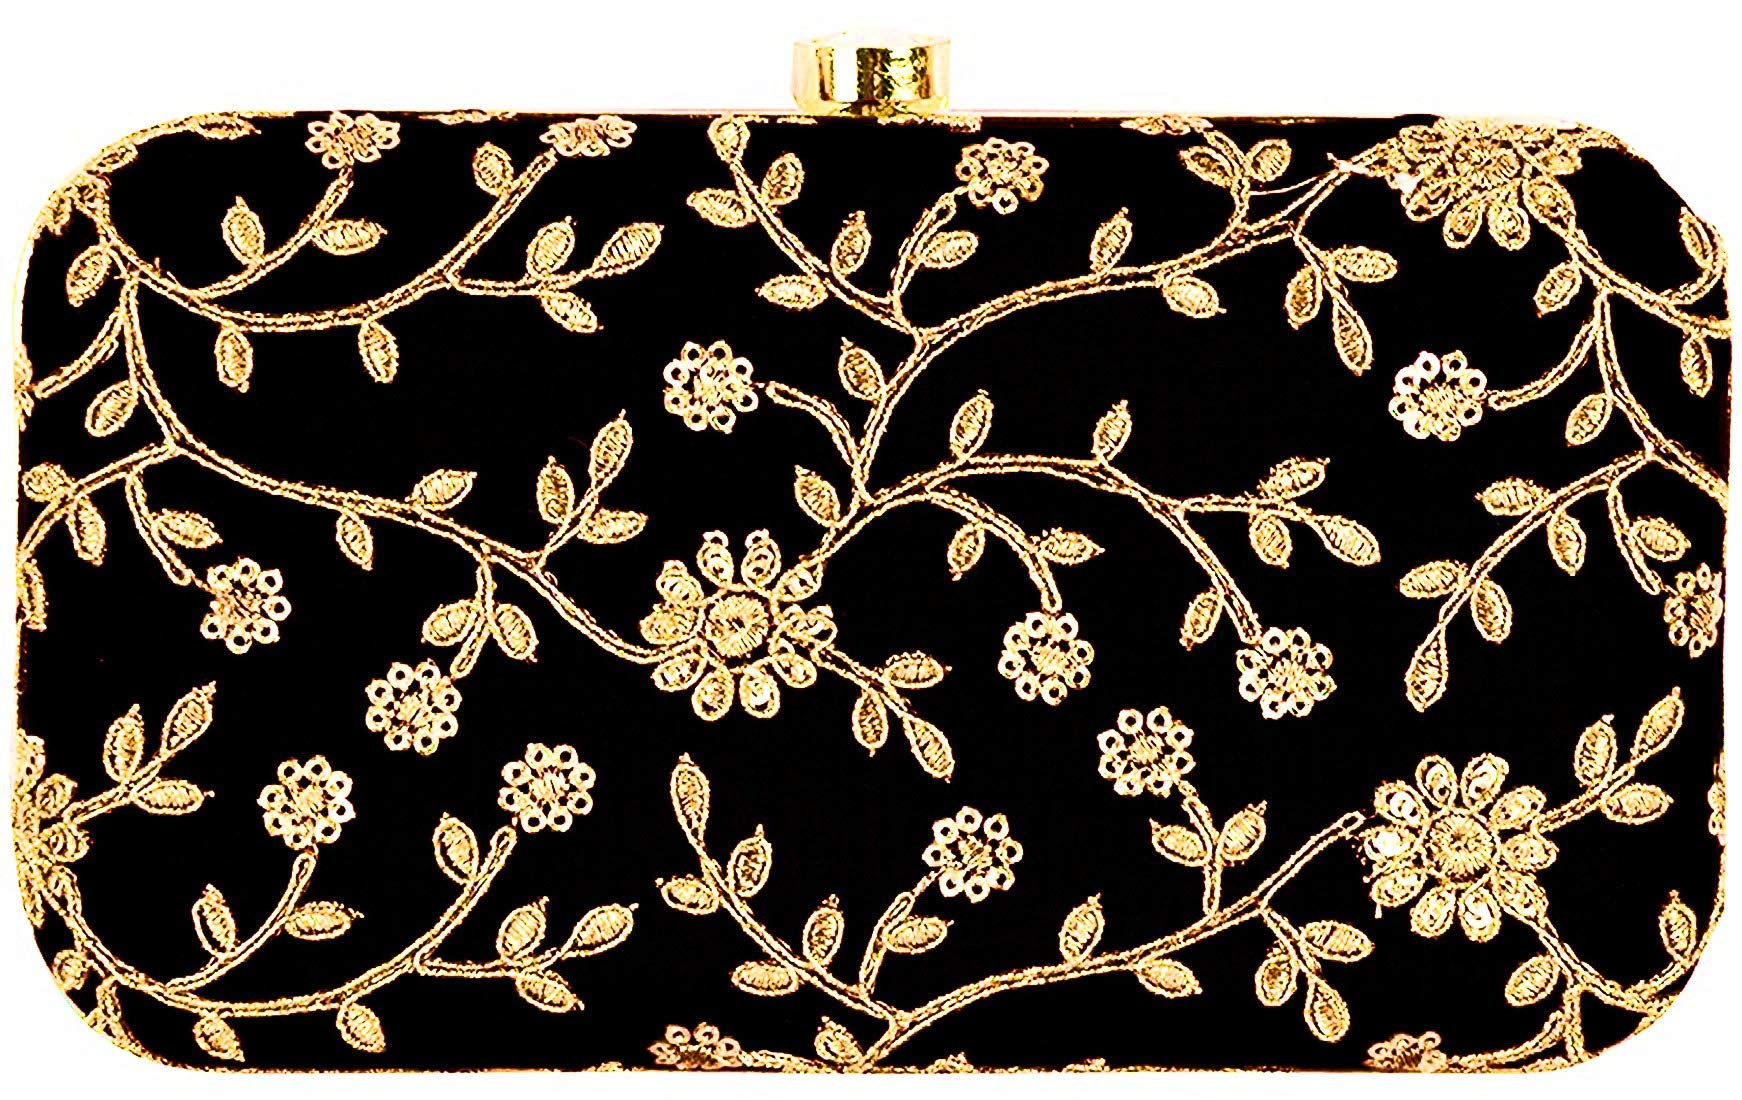 HomeProductWomen s FashionTooba Handicraft Party Wear Hand Embroidered Box  Clutch Bag Purse For Bridal aa0e87ccd1f6f